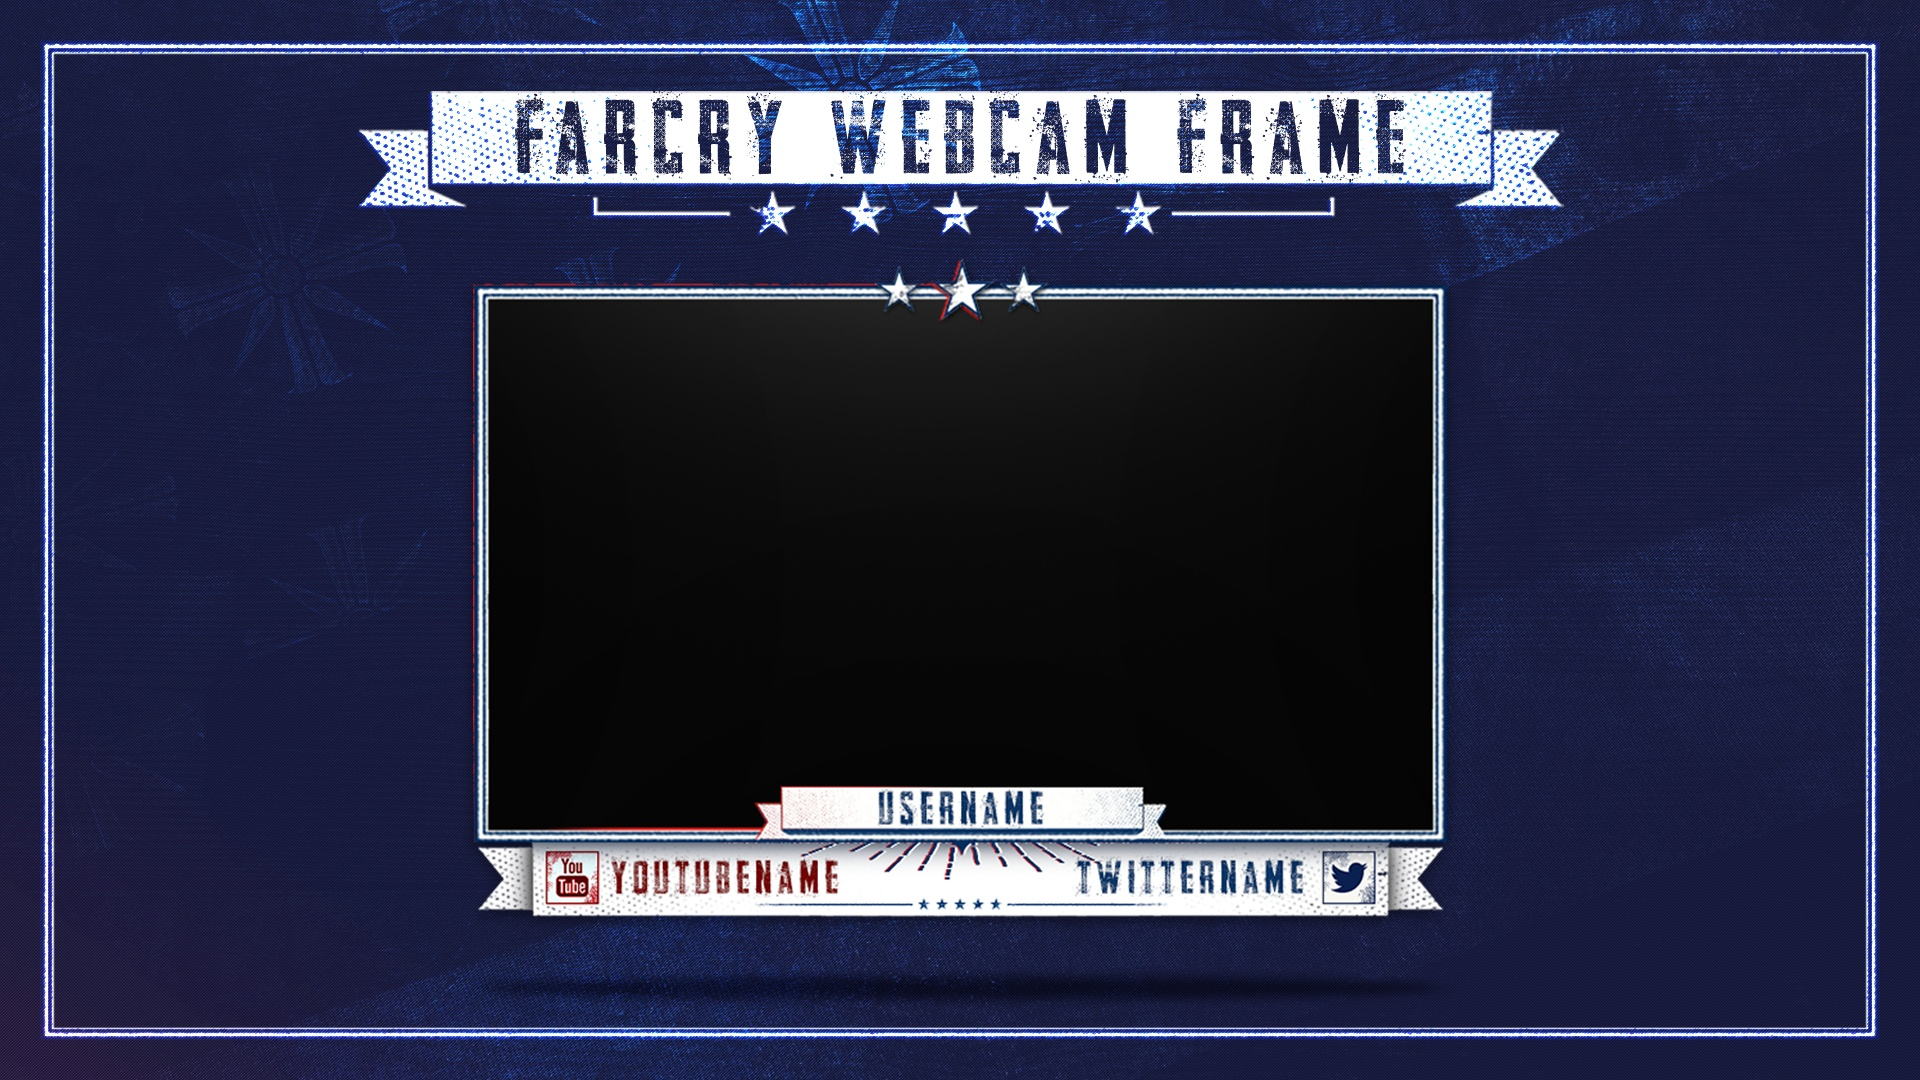 Farcry 5 | Twitch Webcam Template